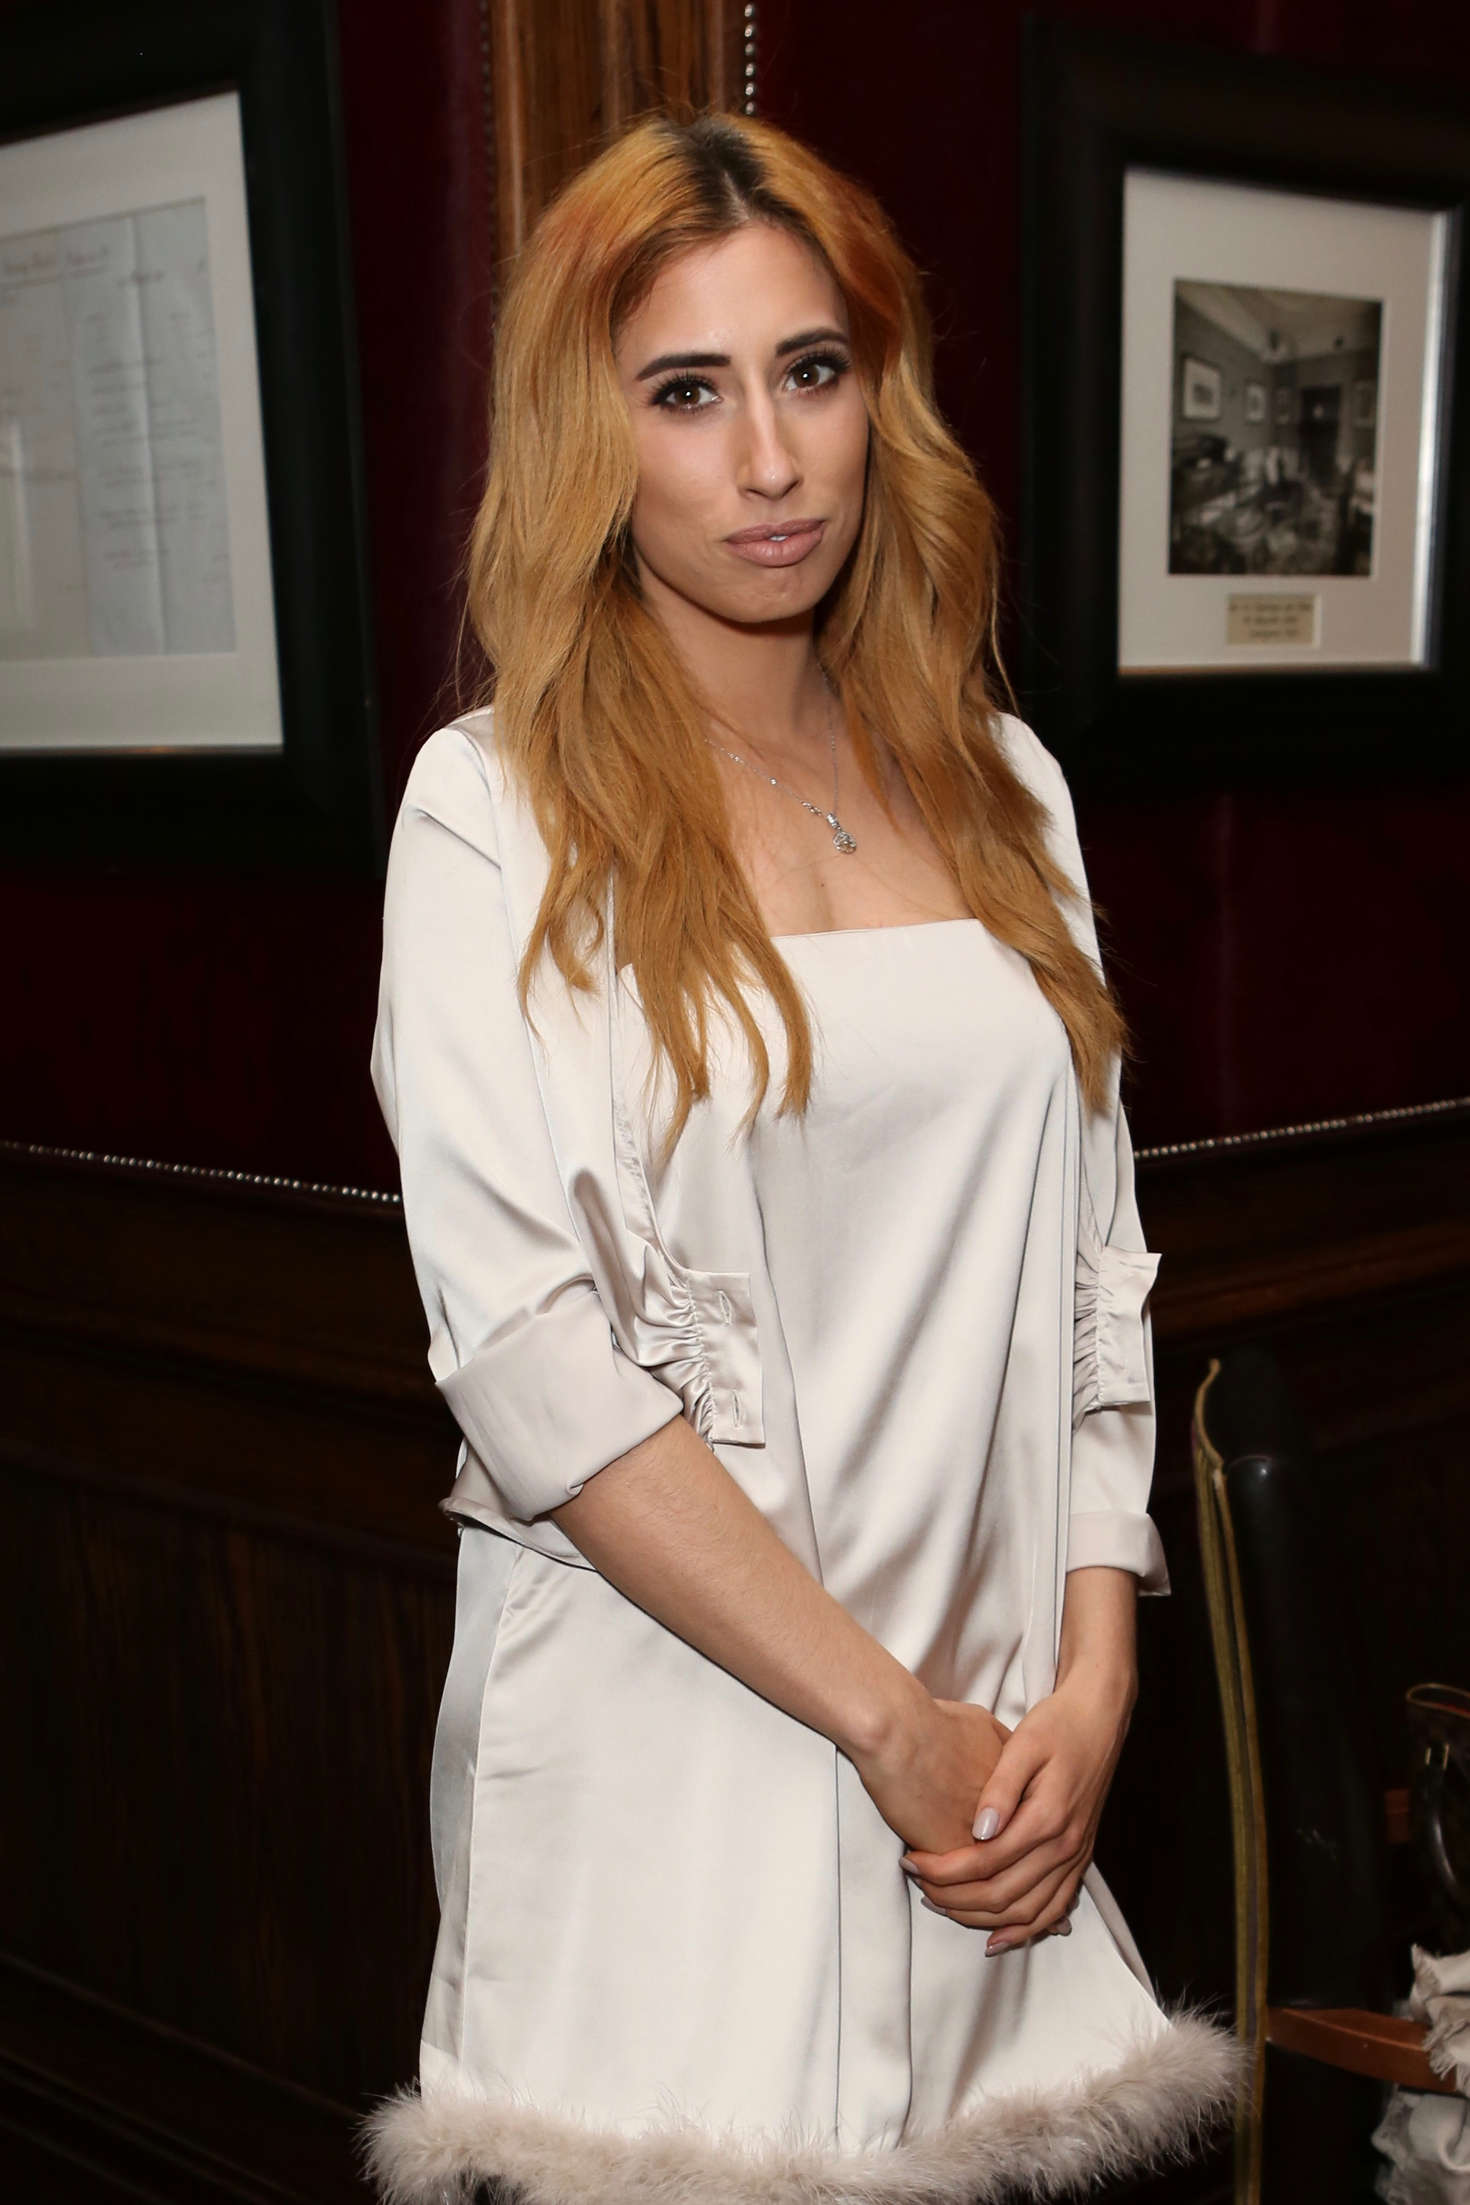 stacey solomon - photo #20